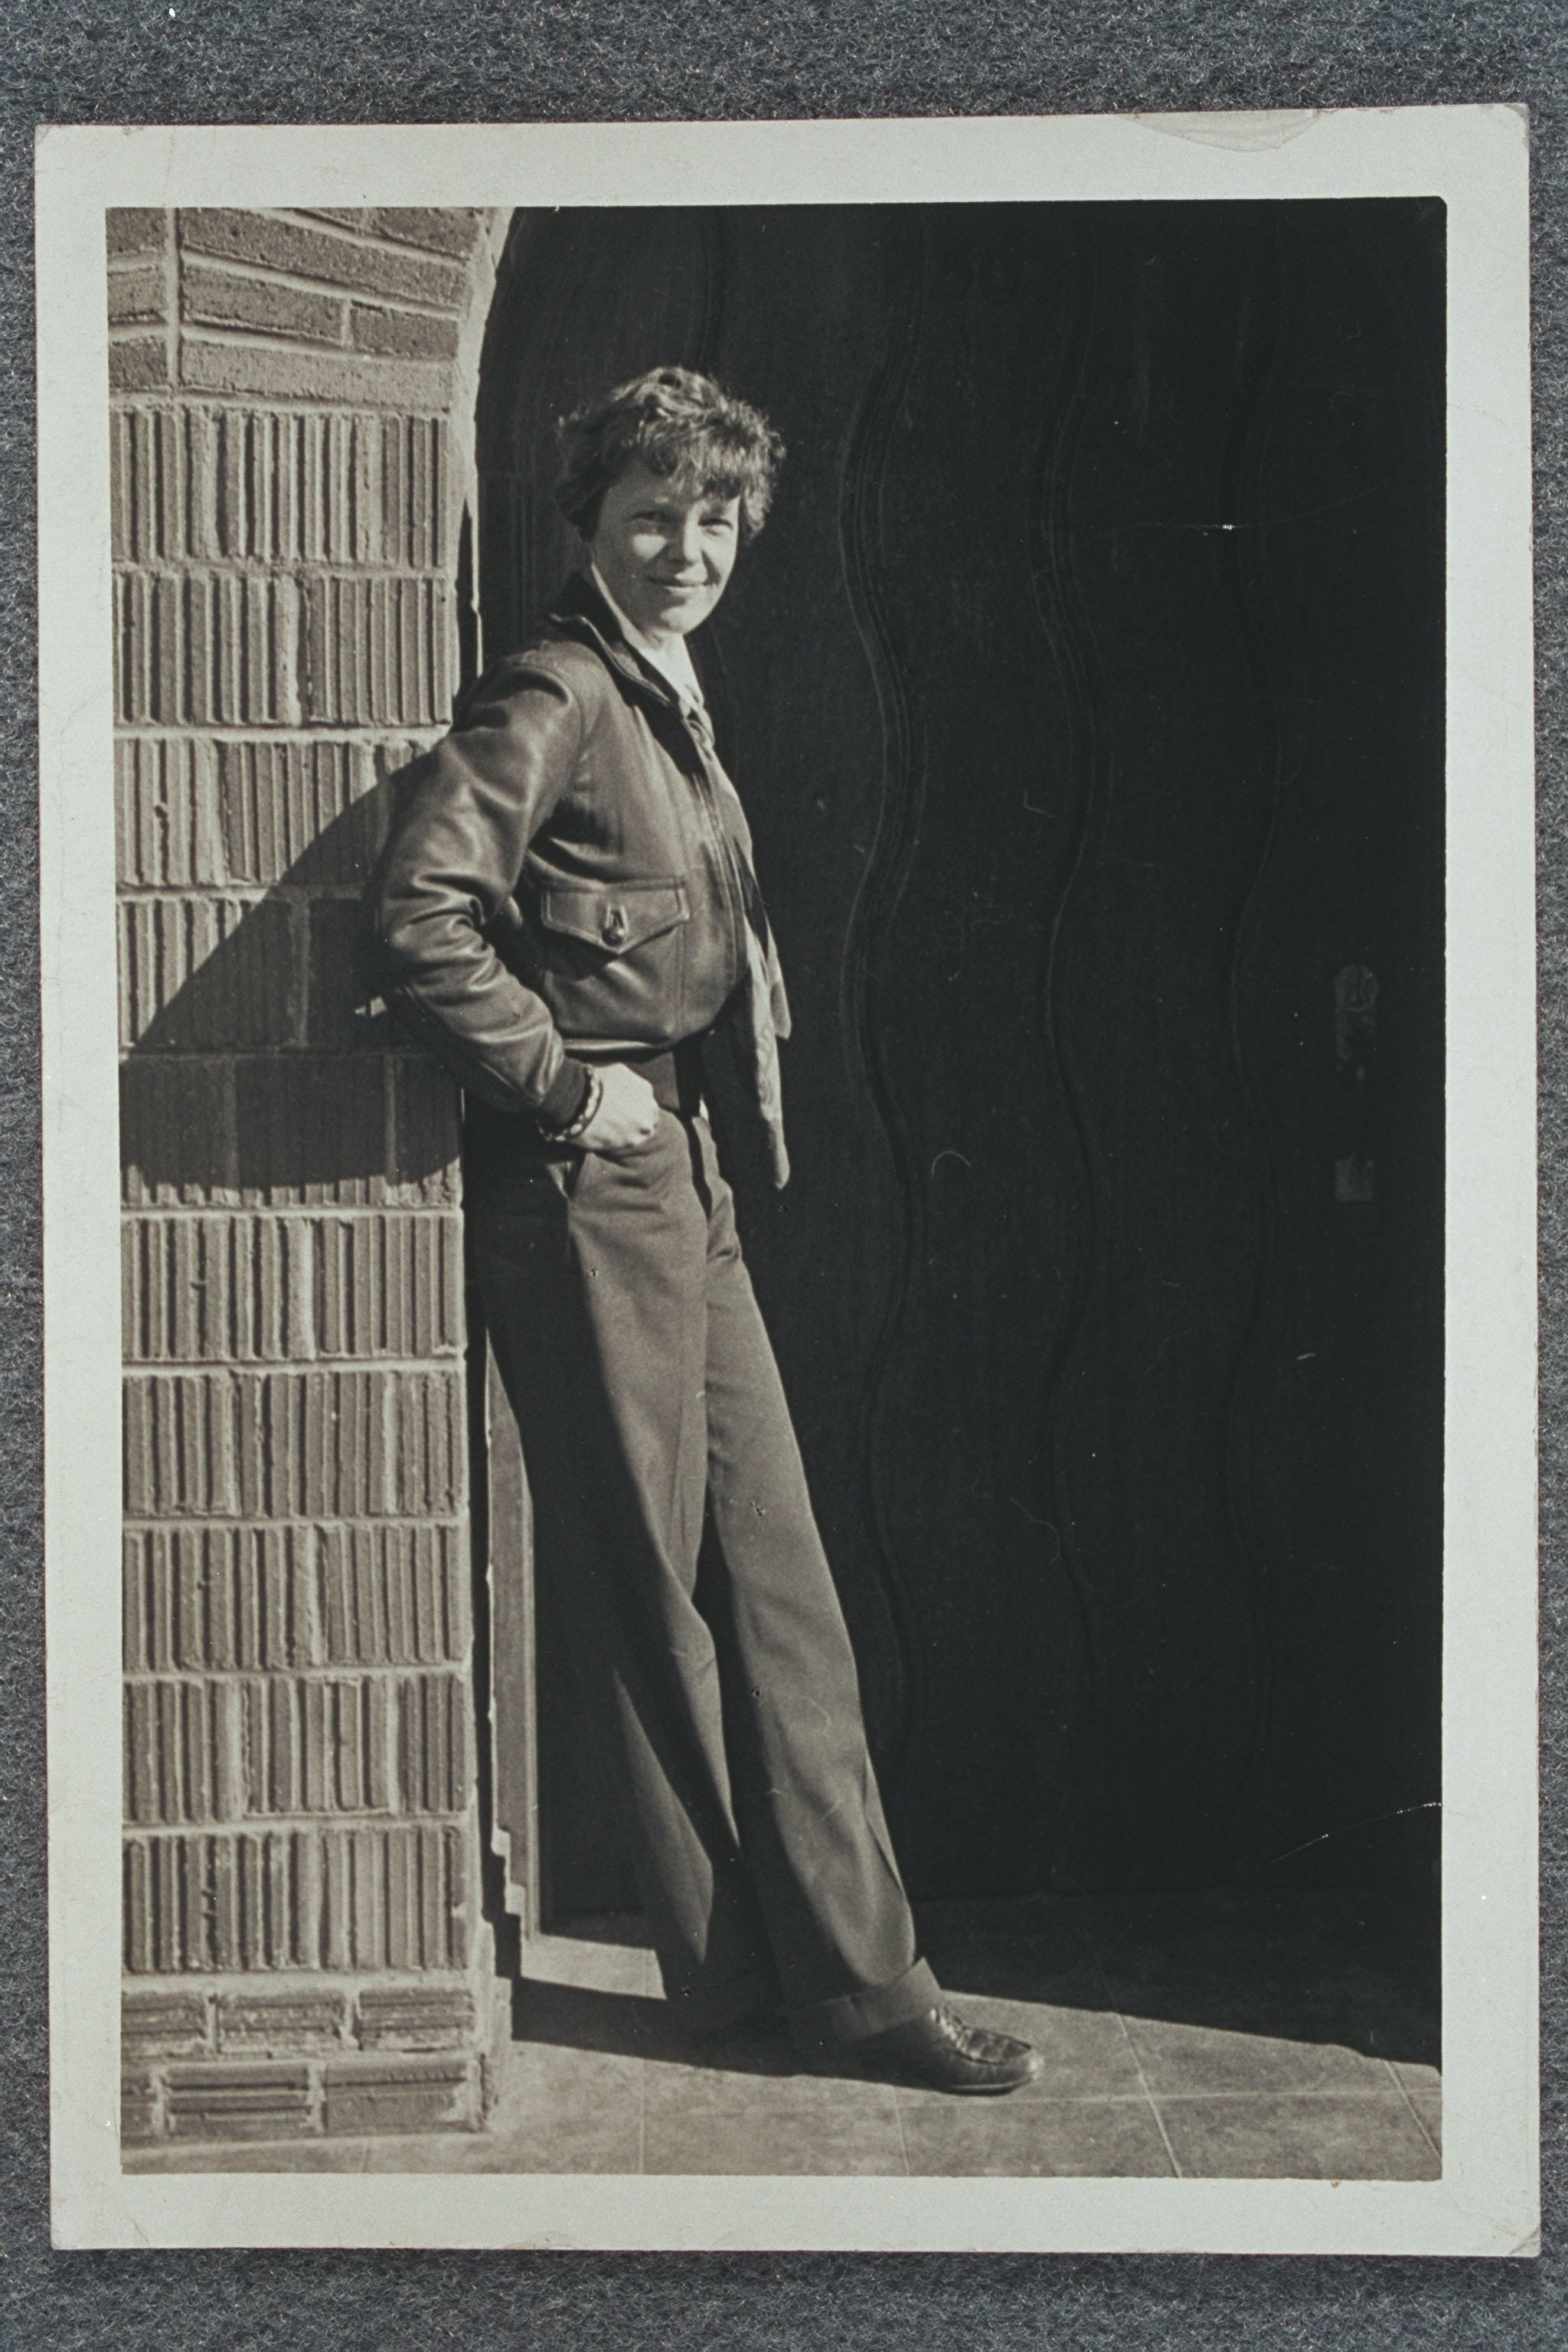 Amelia Earhart leaning against a wall